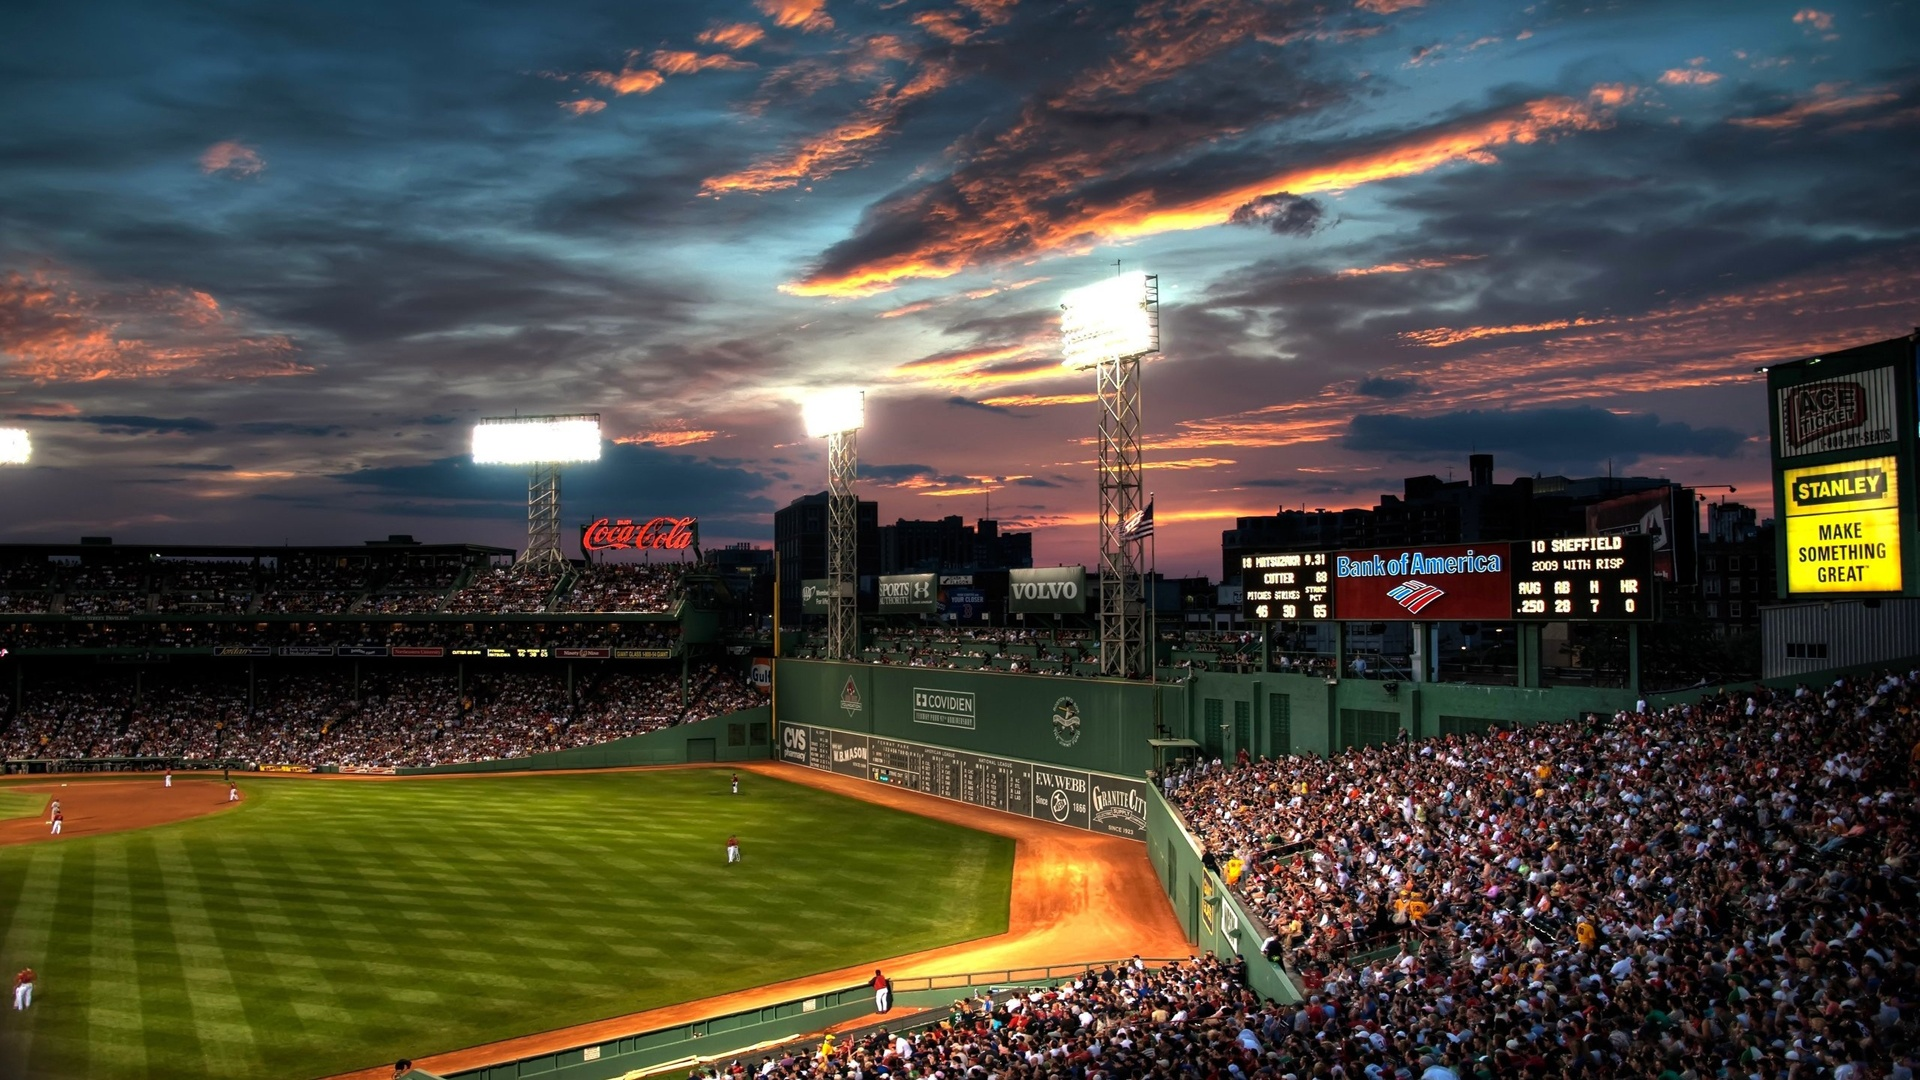 Baseball Fenway Park Stadium Full HD Desktop Wallpapers 1080p 1920x1080